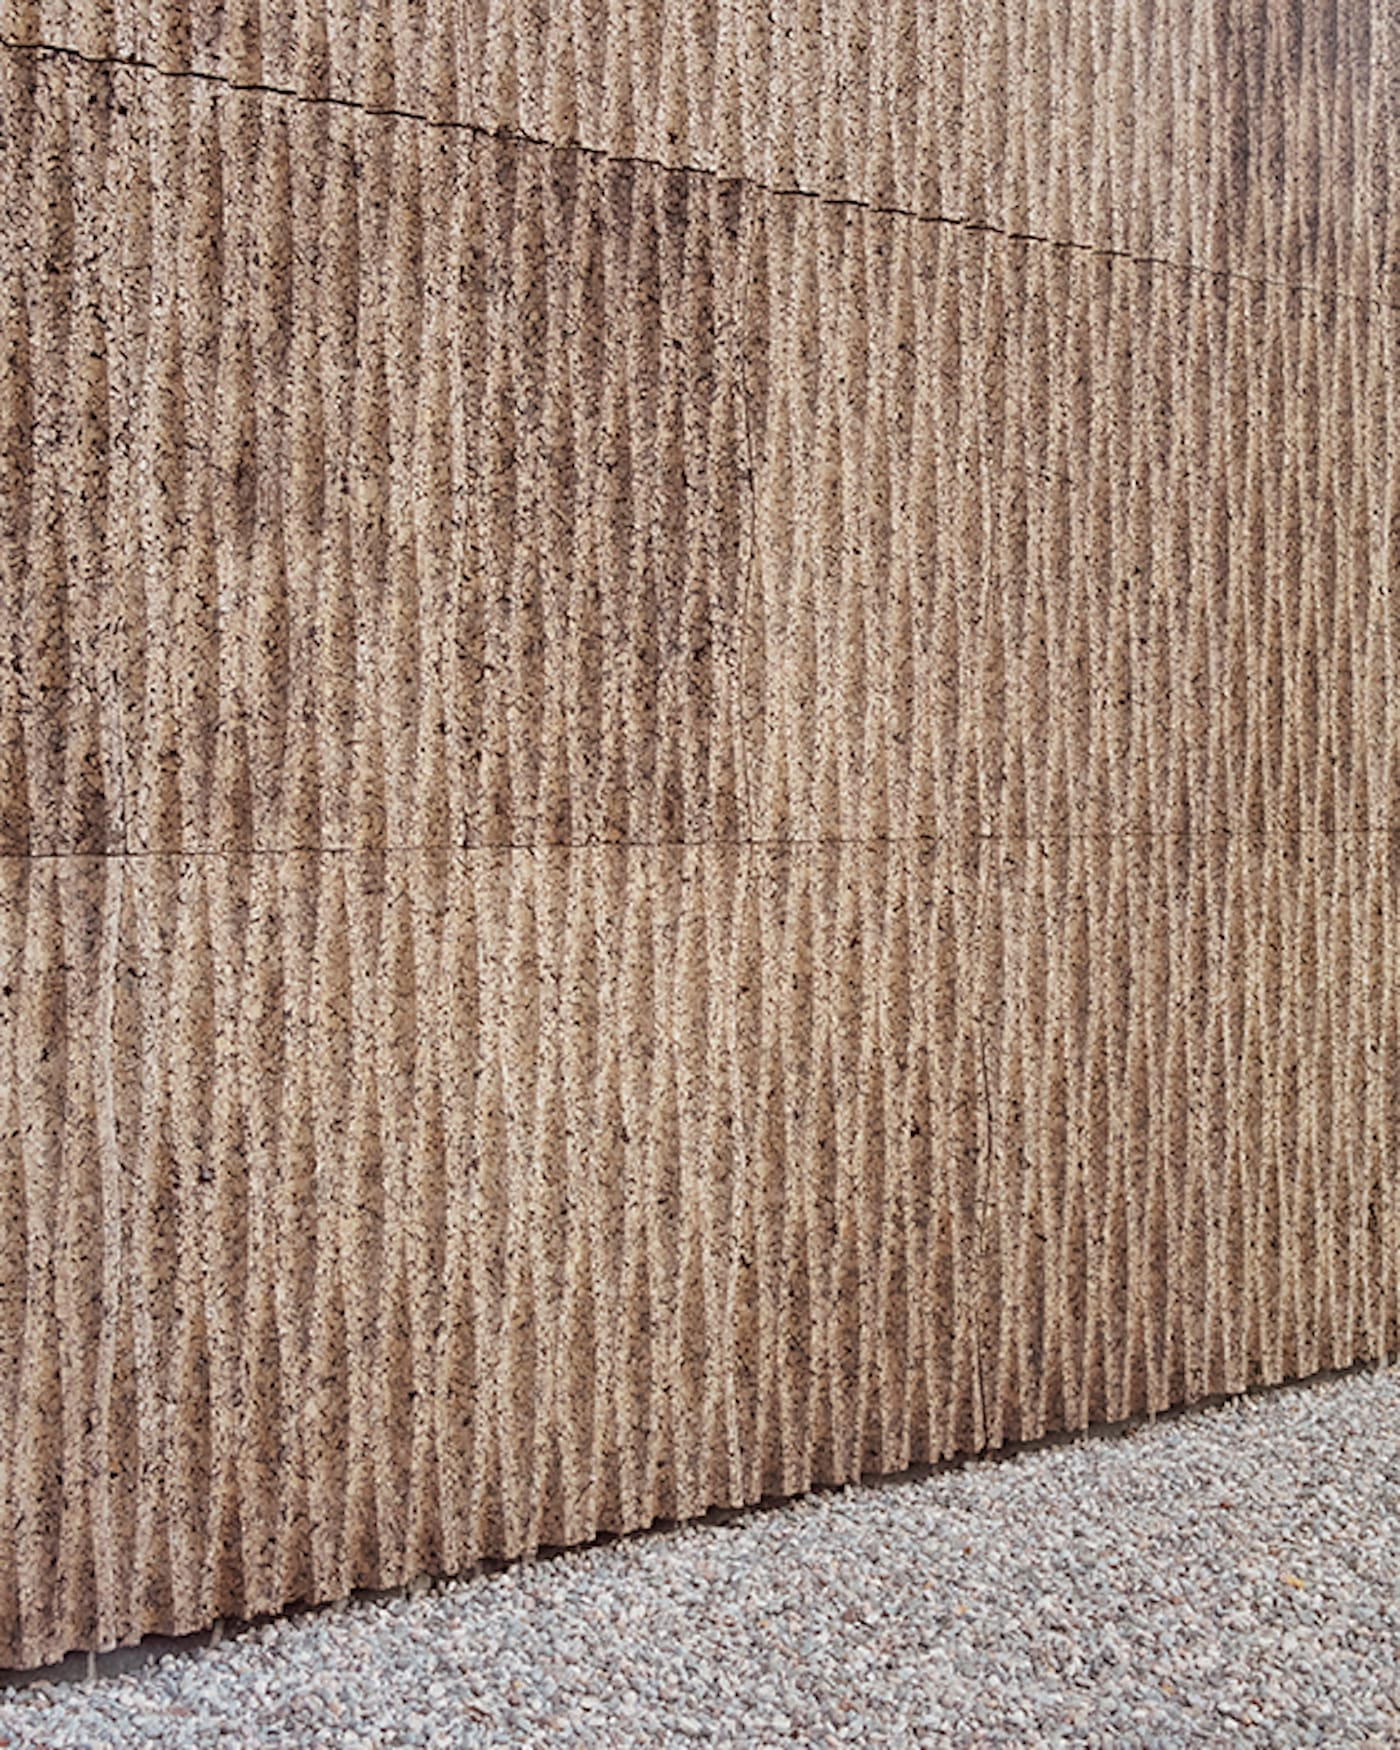 Close up of 3D pressed cork cladding